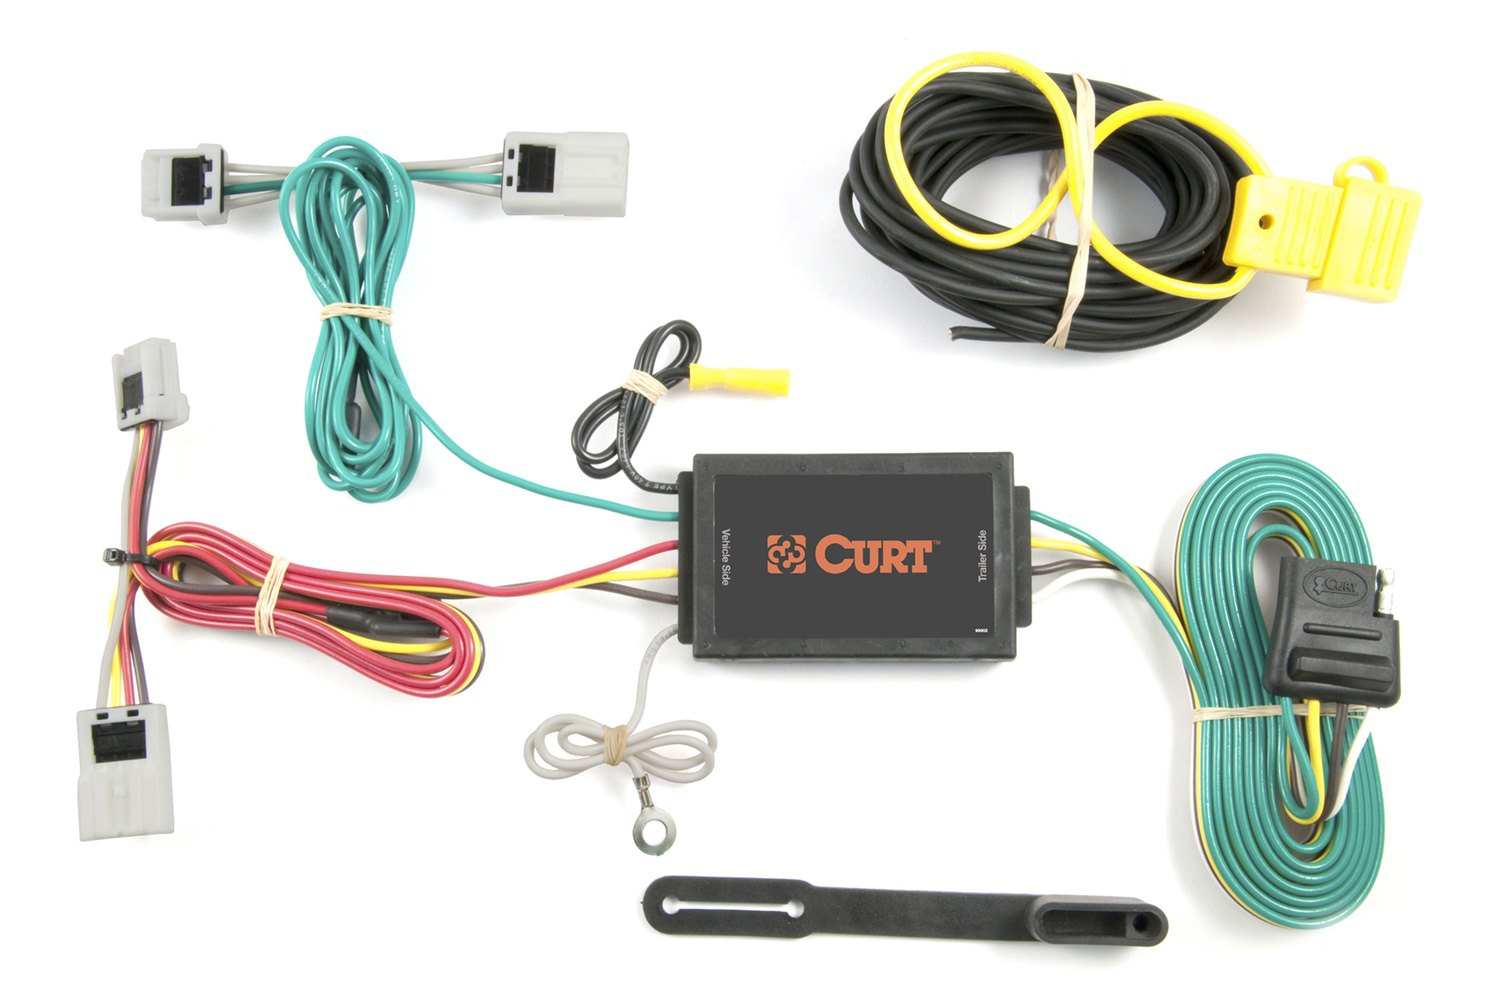 hight resolution of curt u00ae 56033 nissan rogue 2008 2009 3 wire t connector ford edge trailer wiring harness